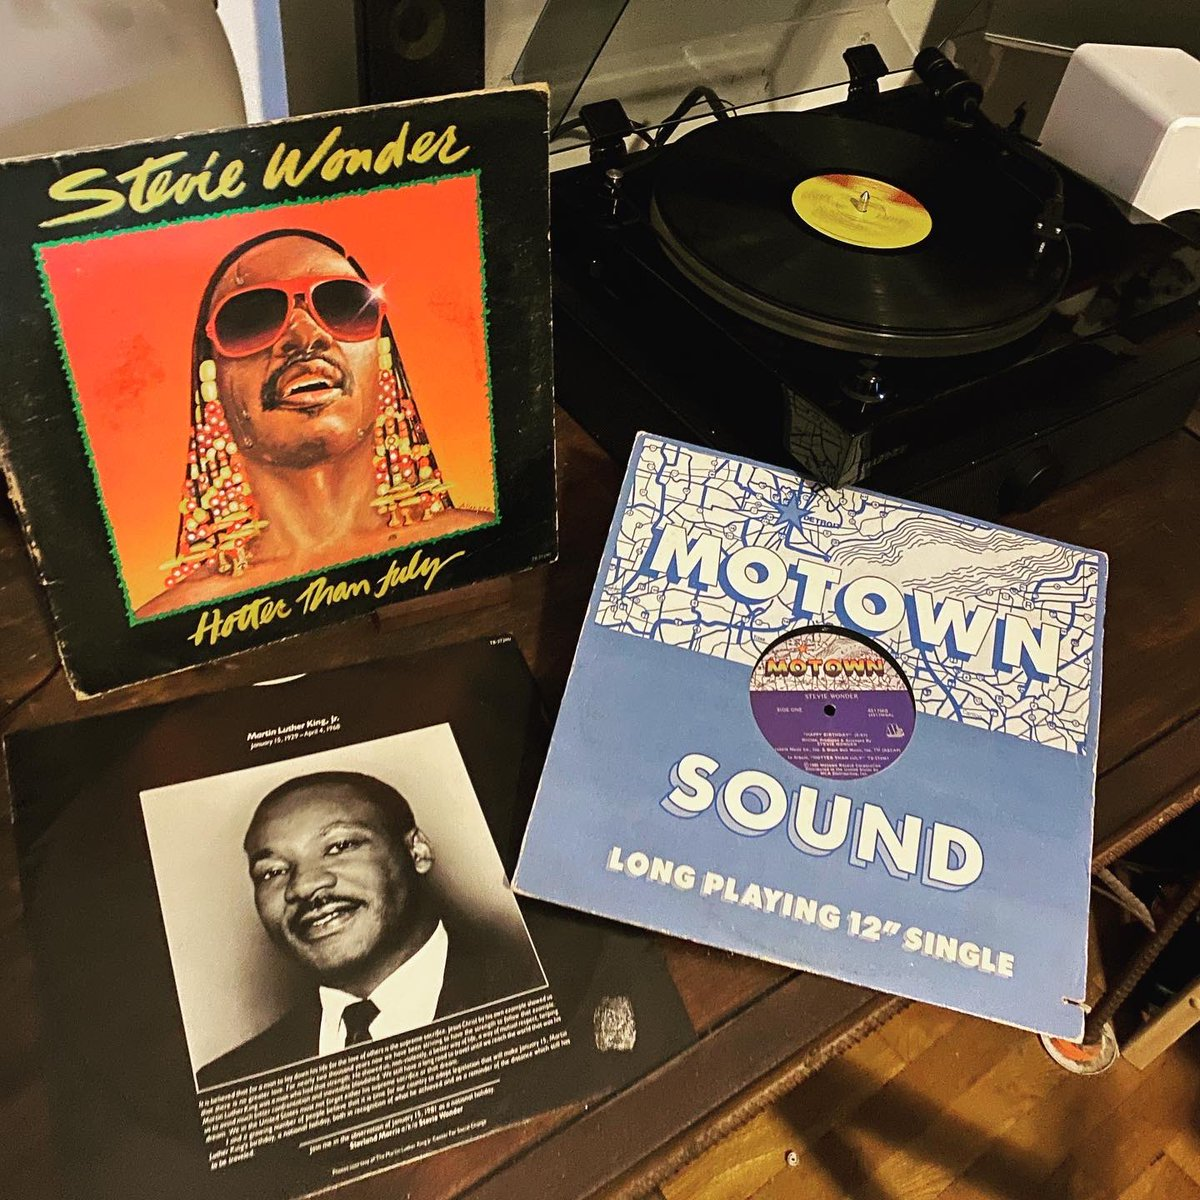 One of the best 12 singles ever and maybe the best Bday song ever written but a song with extra meaning off @StevieWonder last great album #HotterThanJuly A side of Bday is song B side is #mlk speeches record sleeve of July is SW demanding today be a holiday #MLKDay #StevieWonder